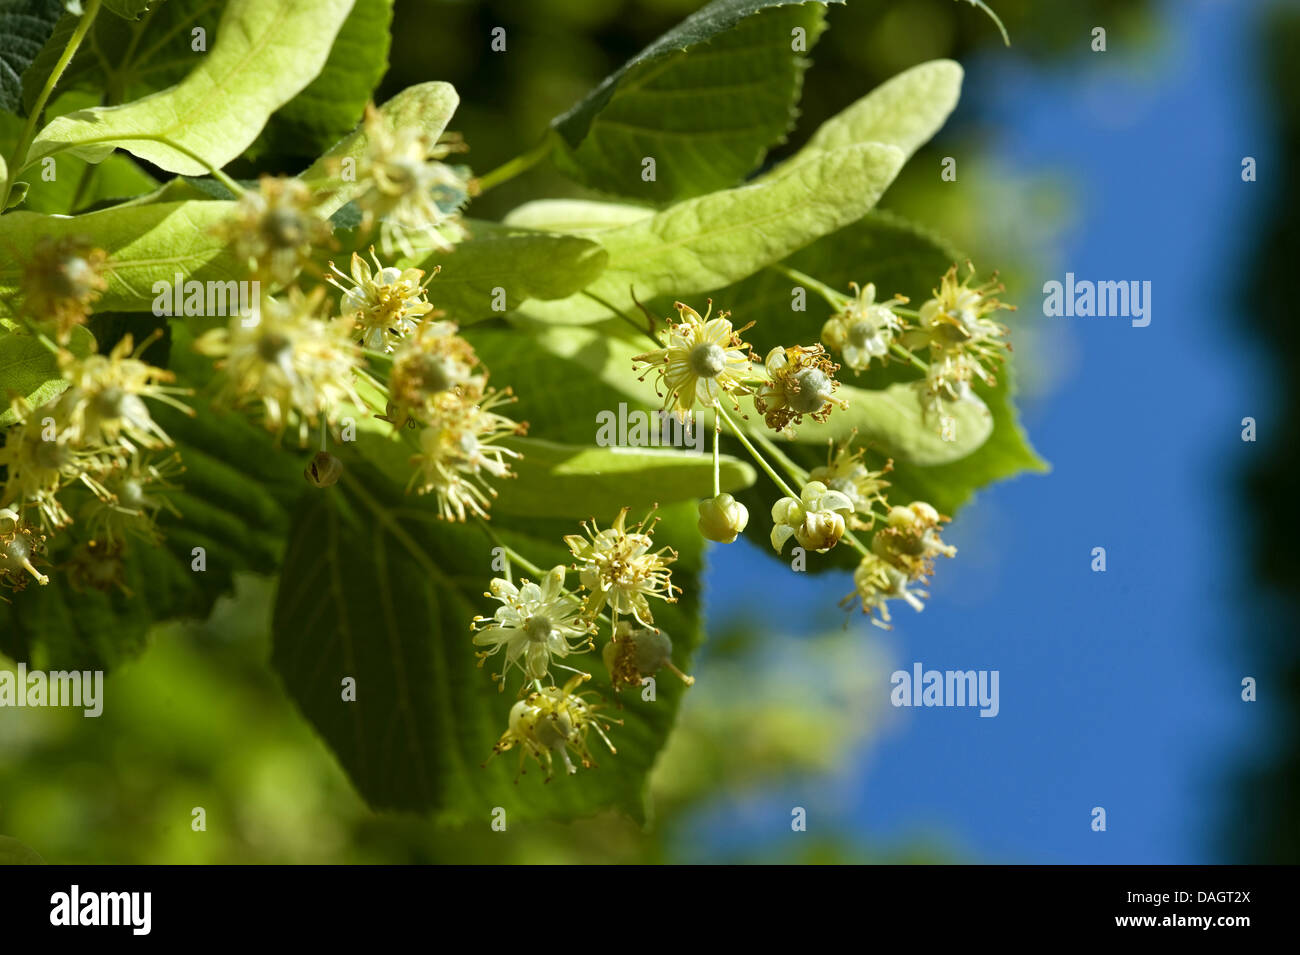 large-leaved lime, lime tree (Tilia platyphyllos), blooming twig, Germany - Stock Image